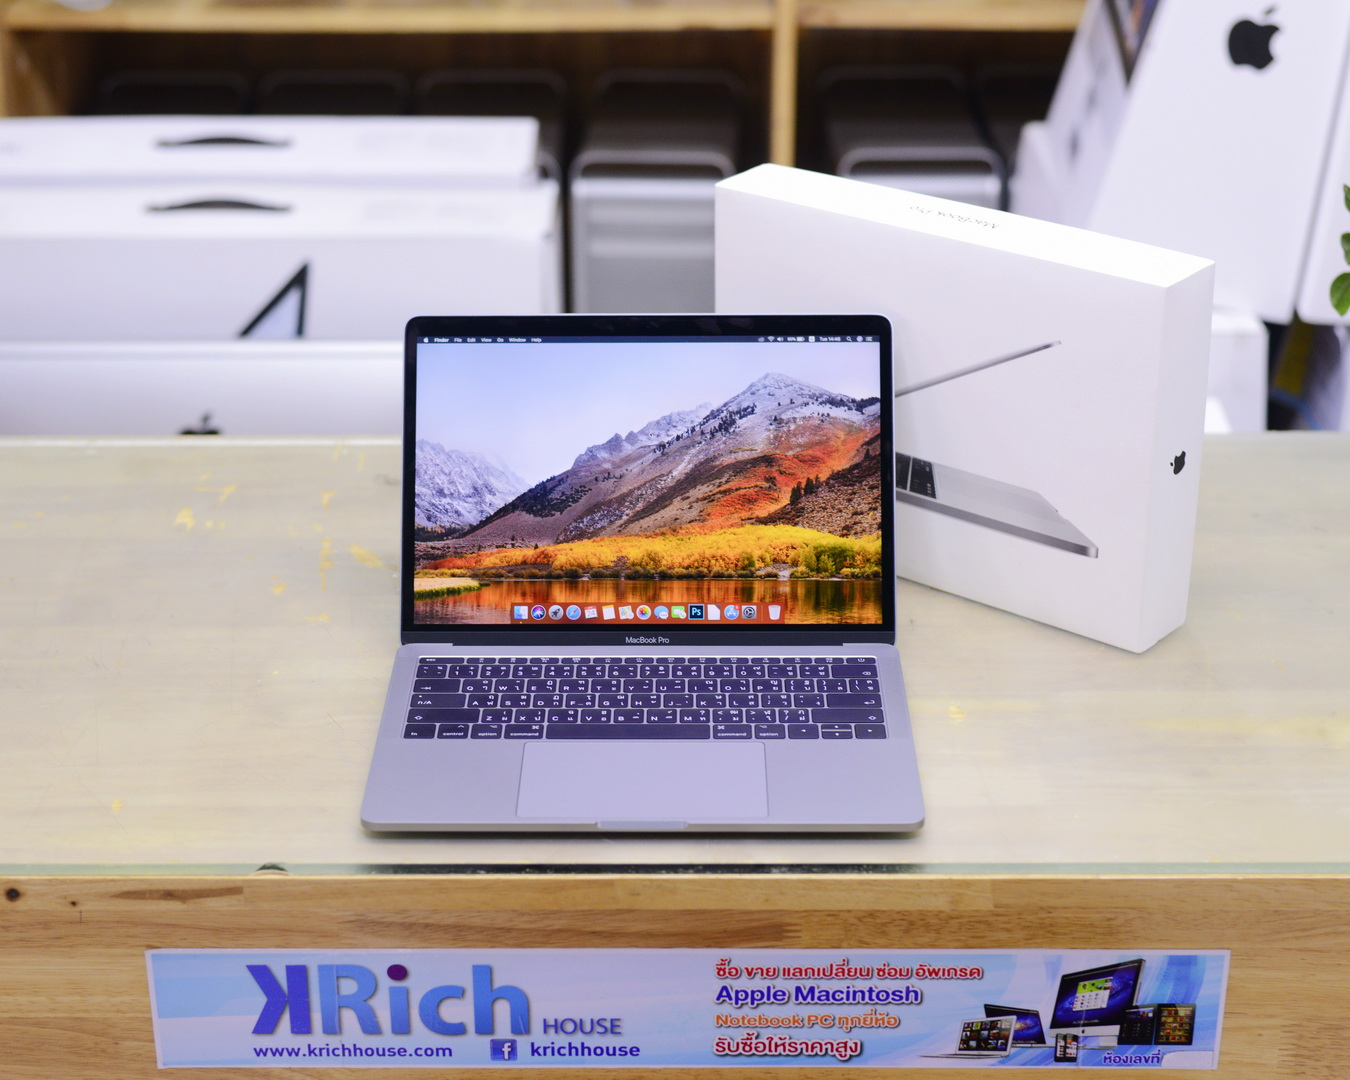 MacBook Pro (13-inch, Mid 2017) No-Touch Bar, Space Gray - Core i5 2.3GHz RAM 8GB SSD 256GB FullBox - Apple Warranty 22-04-2019